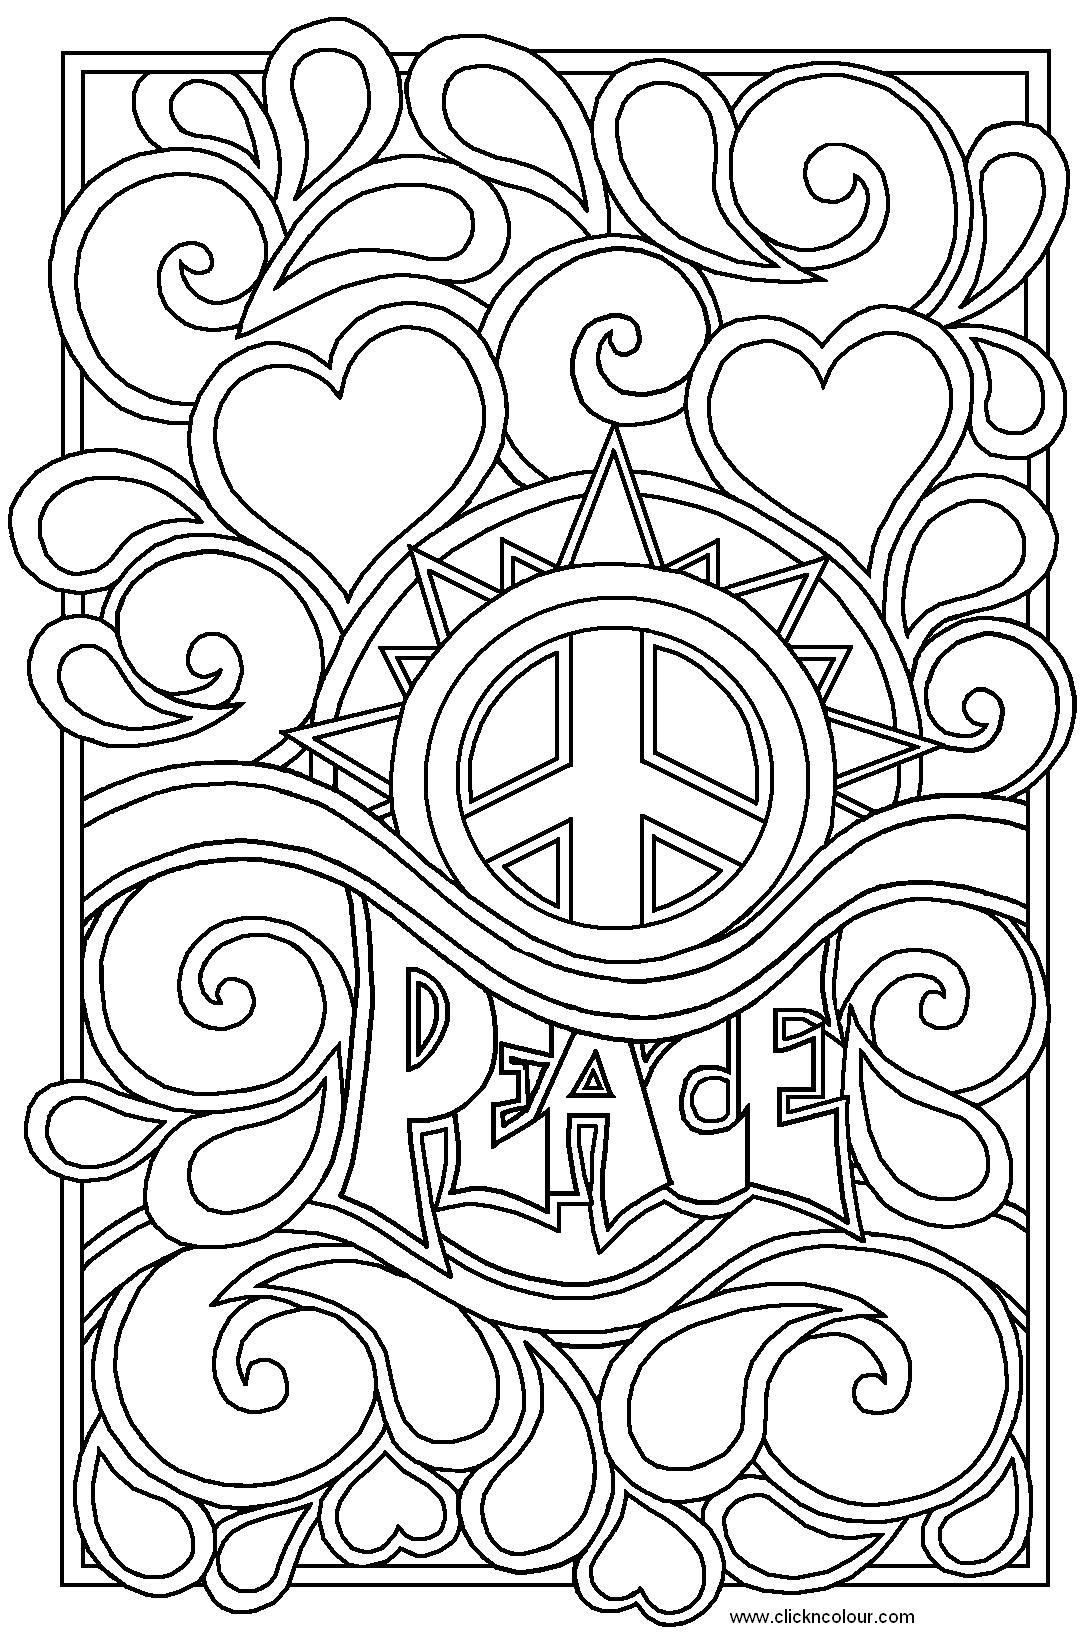 Heart Coloring Pages For Teenagers Peace And Love Colouring